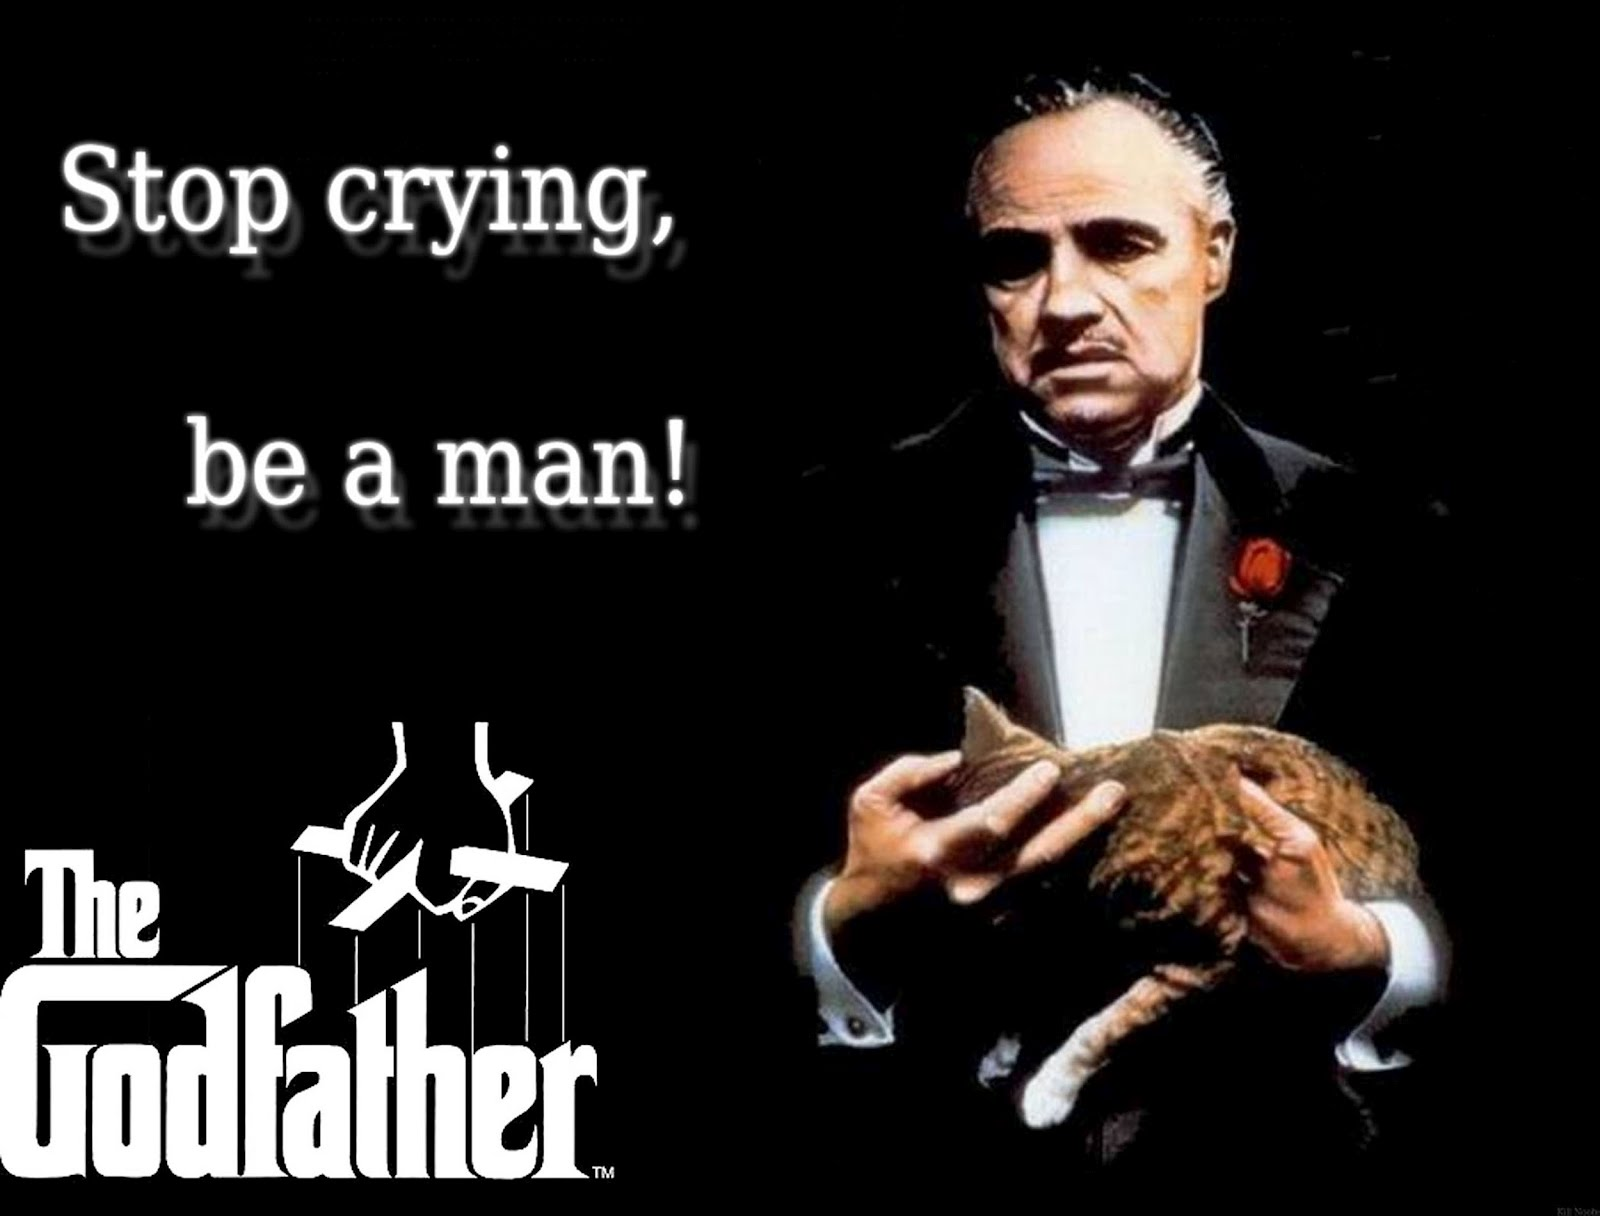 Godfather quote #1